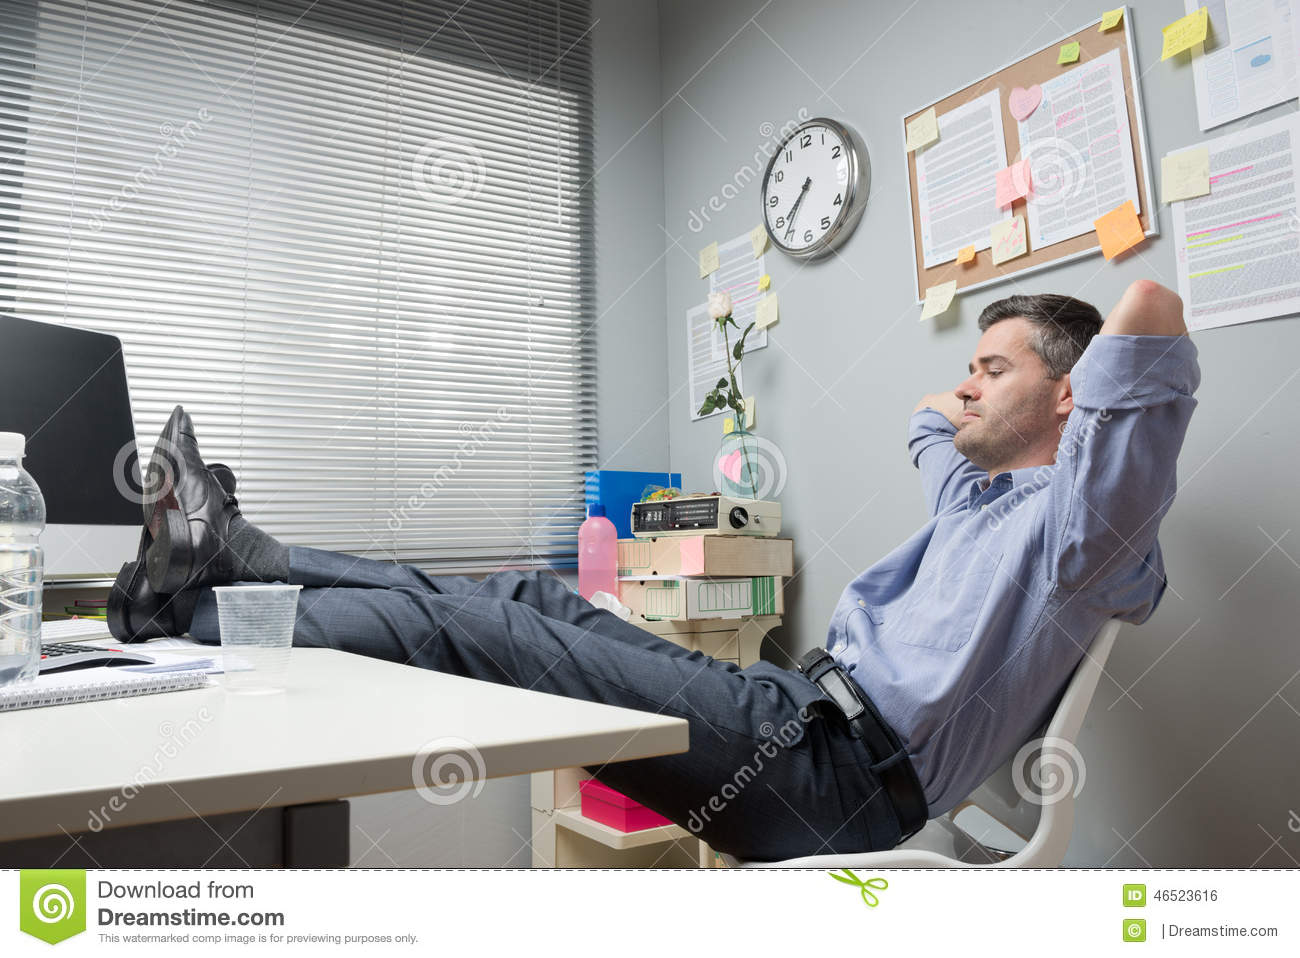 Lazy Office Worker Feet Up Stock Photo - Image: 46523616 Relaxing Dog Music